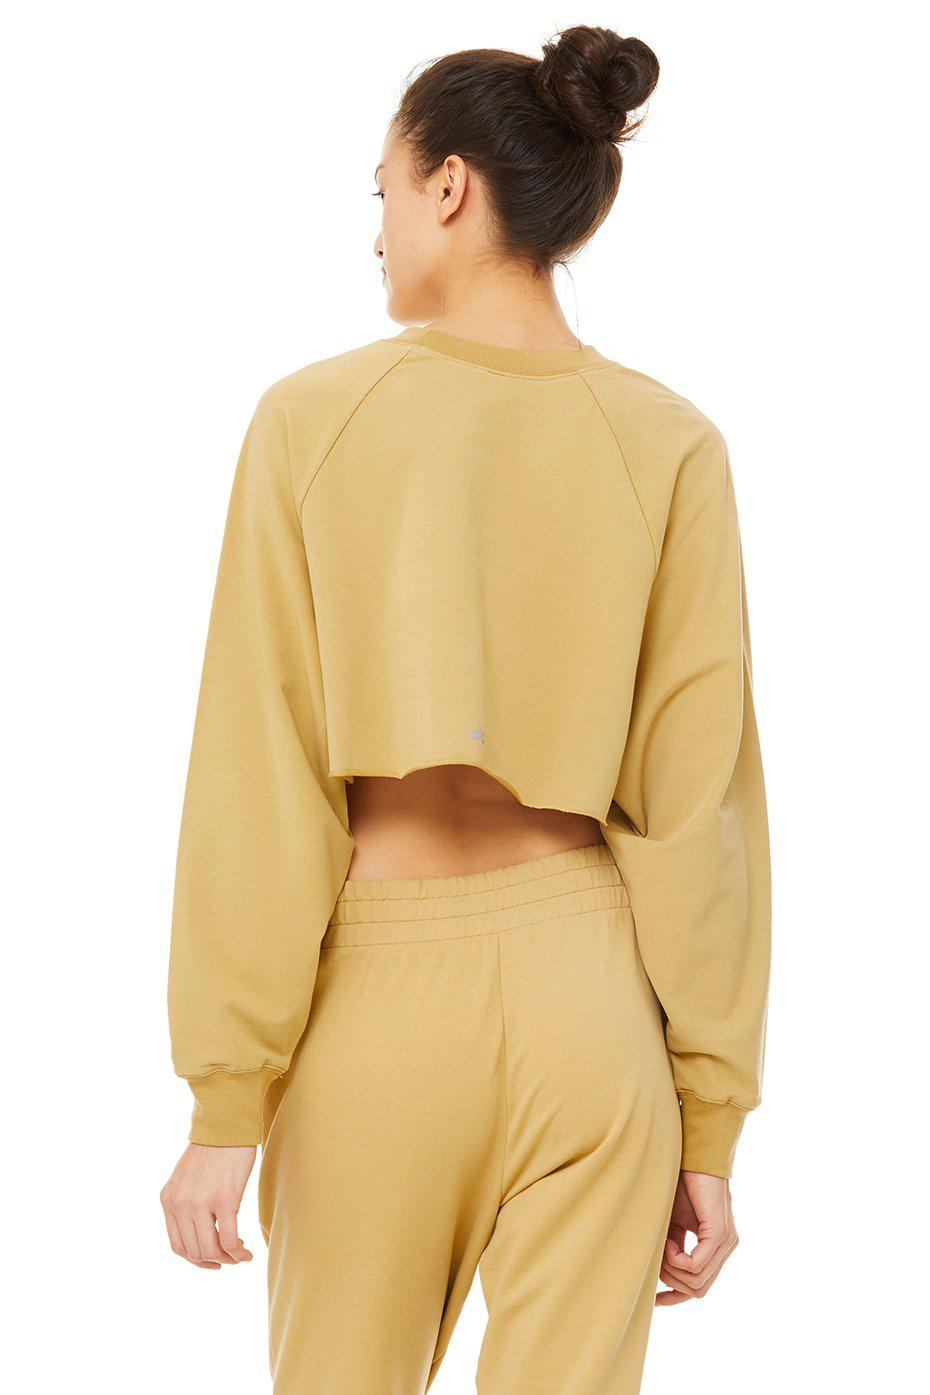 Double Take Pullover - Honey 2